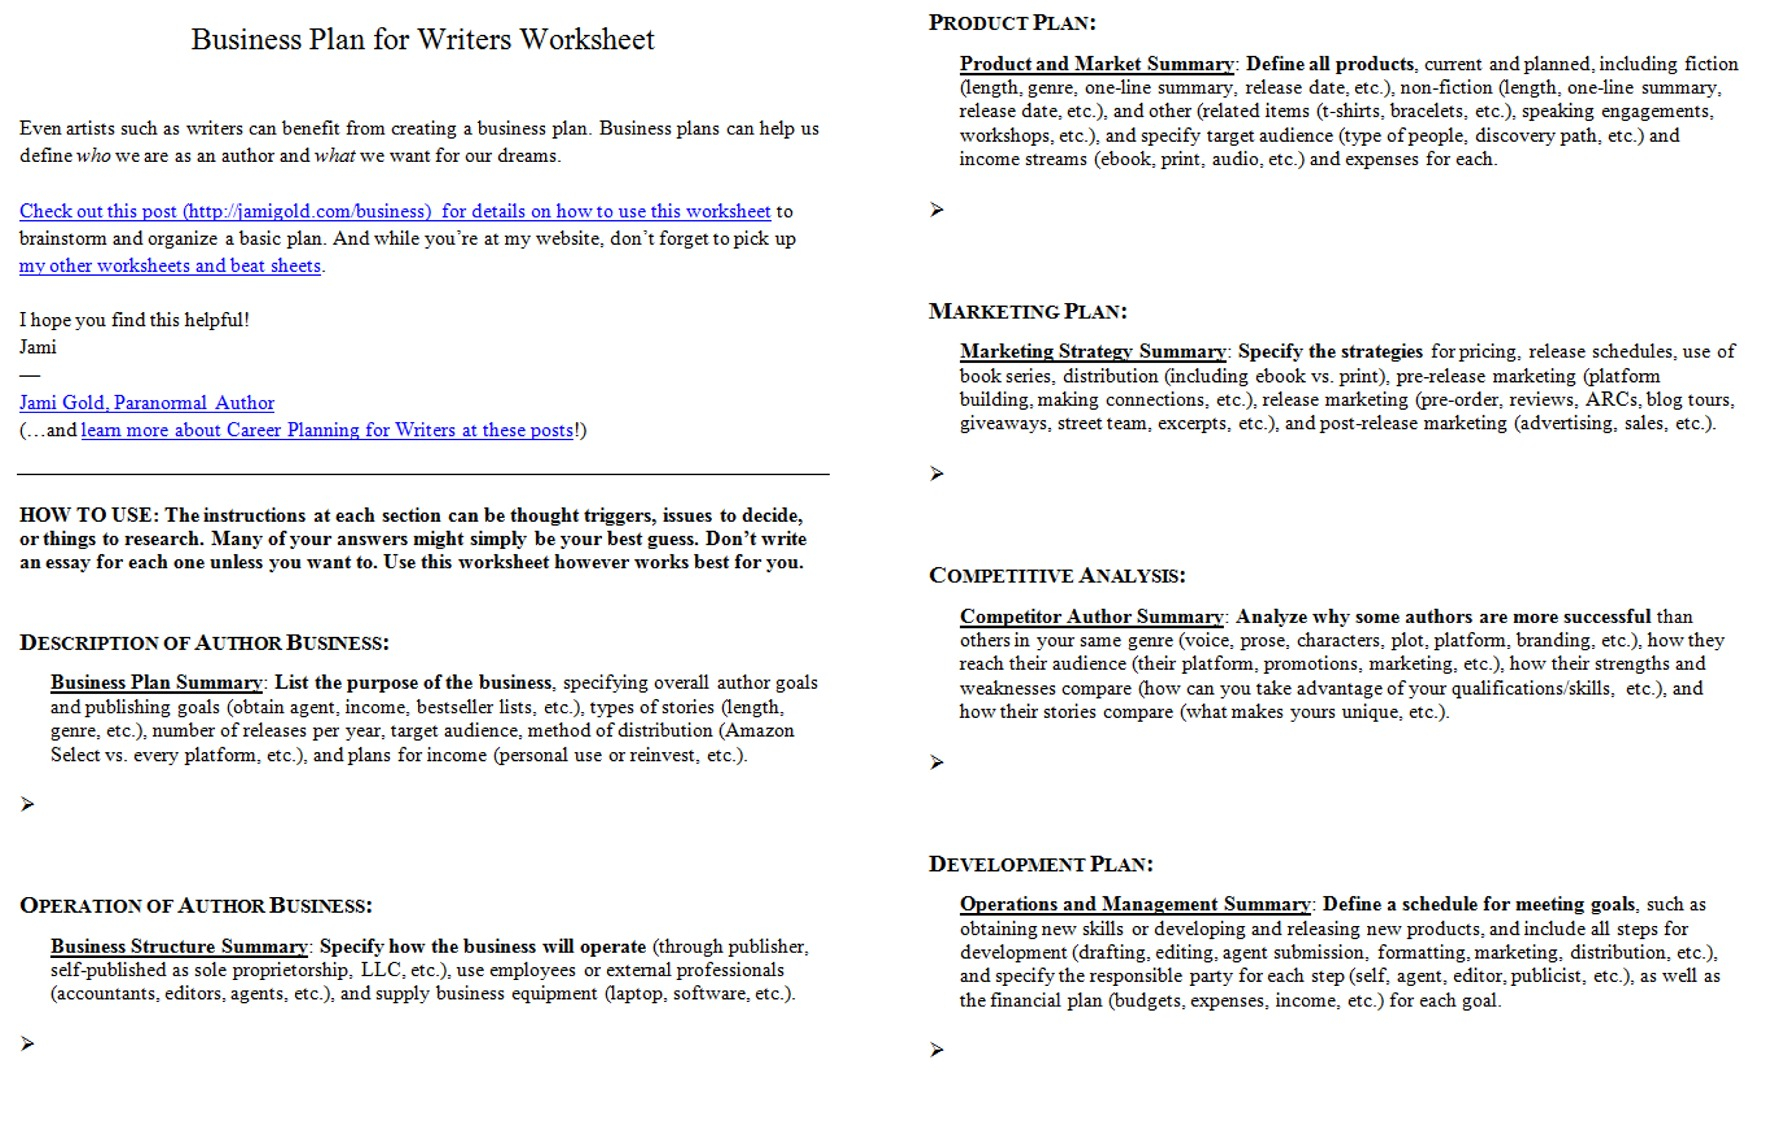 Aldiablosus  Marvellous Worksheets For Writers  Jami Gold Paranormal Author With Fascinating Screen Shot Of Both Pages Of The Business Plan For Writers Worksheet With Delightful Algebra Equation Worksheets Also Free Printable Abc Order Worksheets In Addition Sound Energy Worksheets And Kindergarten Sorting Worksheet As Well As Essay Worksheets Additionally Types Of Clouds Worksheets From Jamigoldcom With Aldiablosus  Fascinating Worksheets For Writers  Jami Gold Paranormal Author With Delightful Screen Shot Of Both Pages Of The Business Plan For Writers Worksheet And Marvellous Algebra Equation Worksheets Also Free Printable Abc Order Worksheets In Addition Sound Energy Worksheets From Jamigoldcom